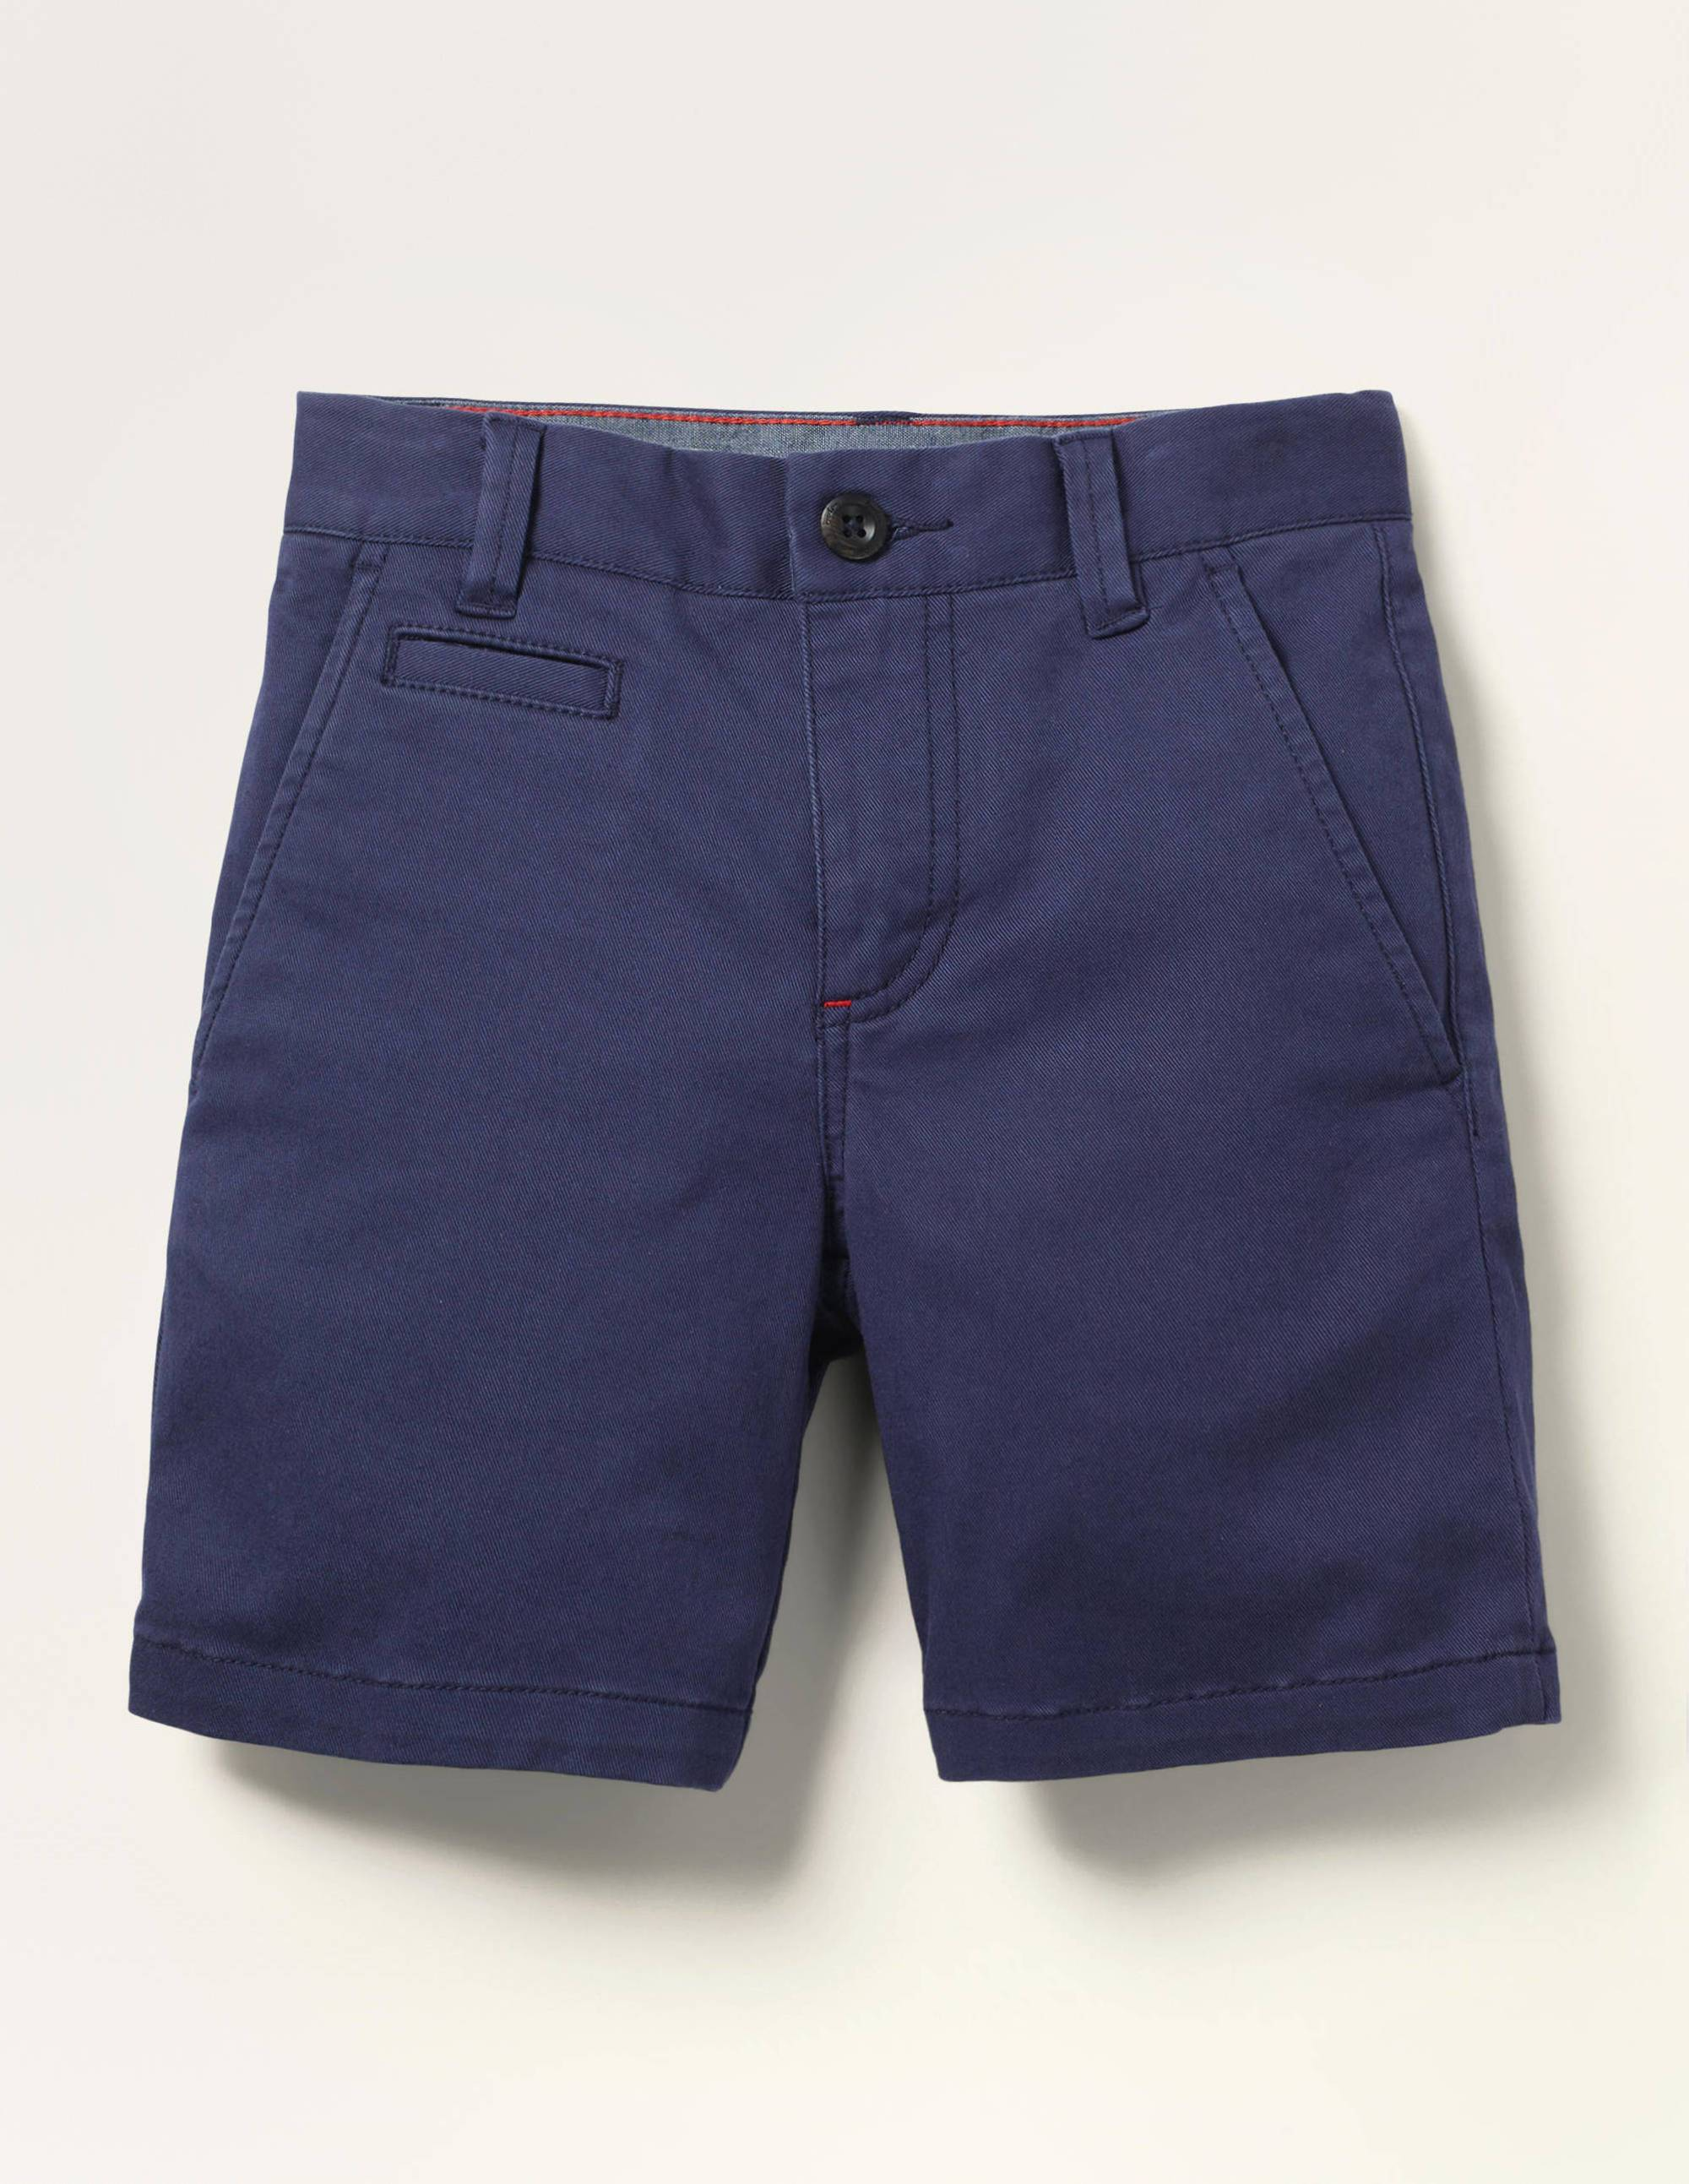 Mini Short chino NAV Femme Boden, Blue - 16a